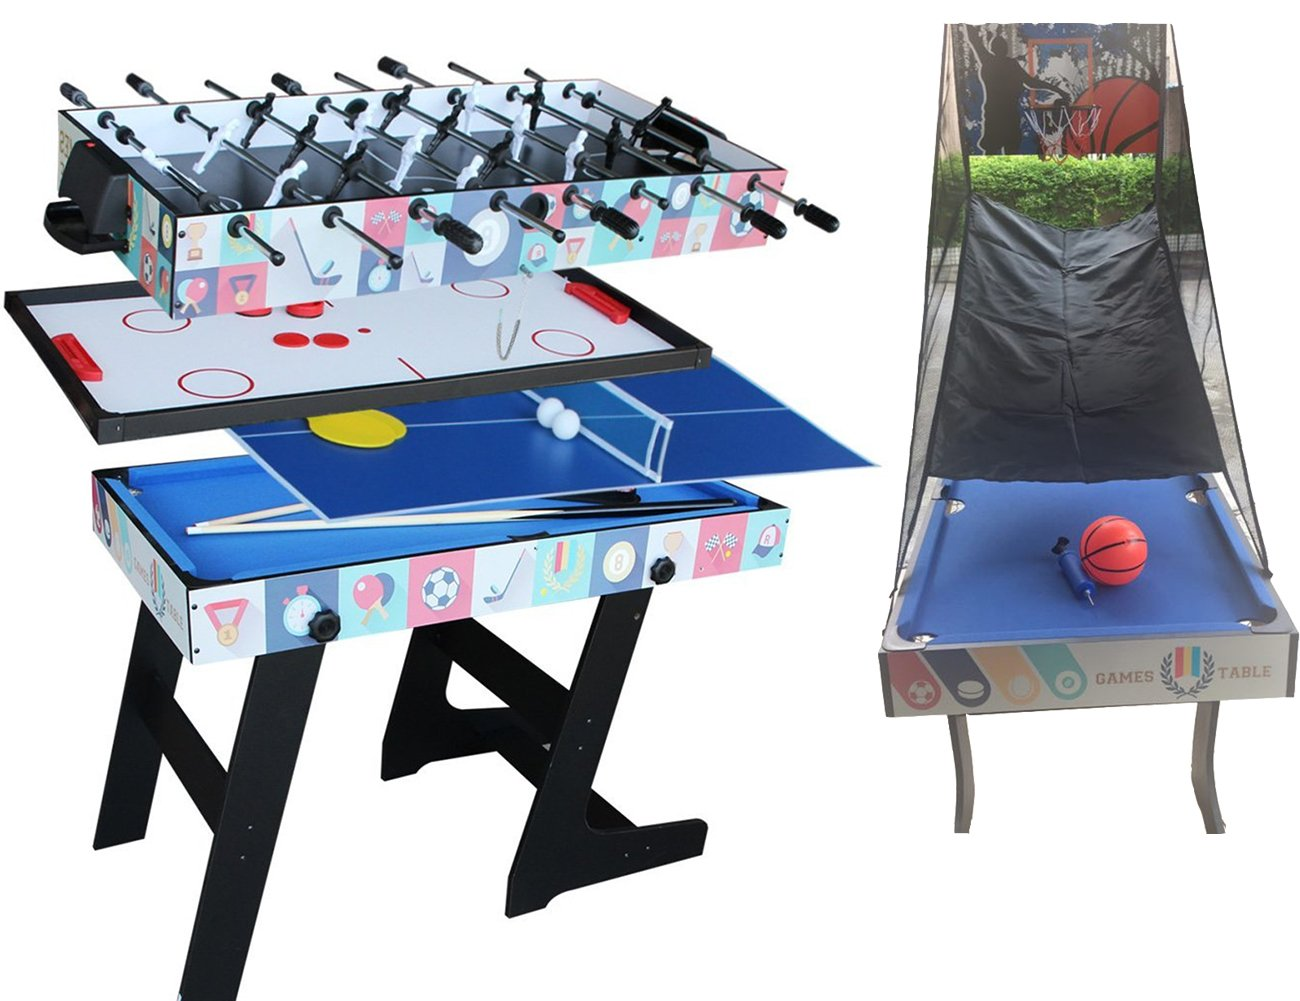 Deluxe 5 in 1 Top Game Table Folding Table-Table Tennis,Glide Hockey,Chess,Pool,Basketball Set